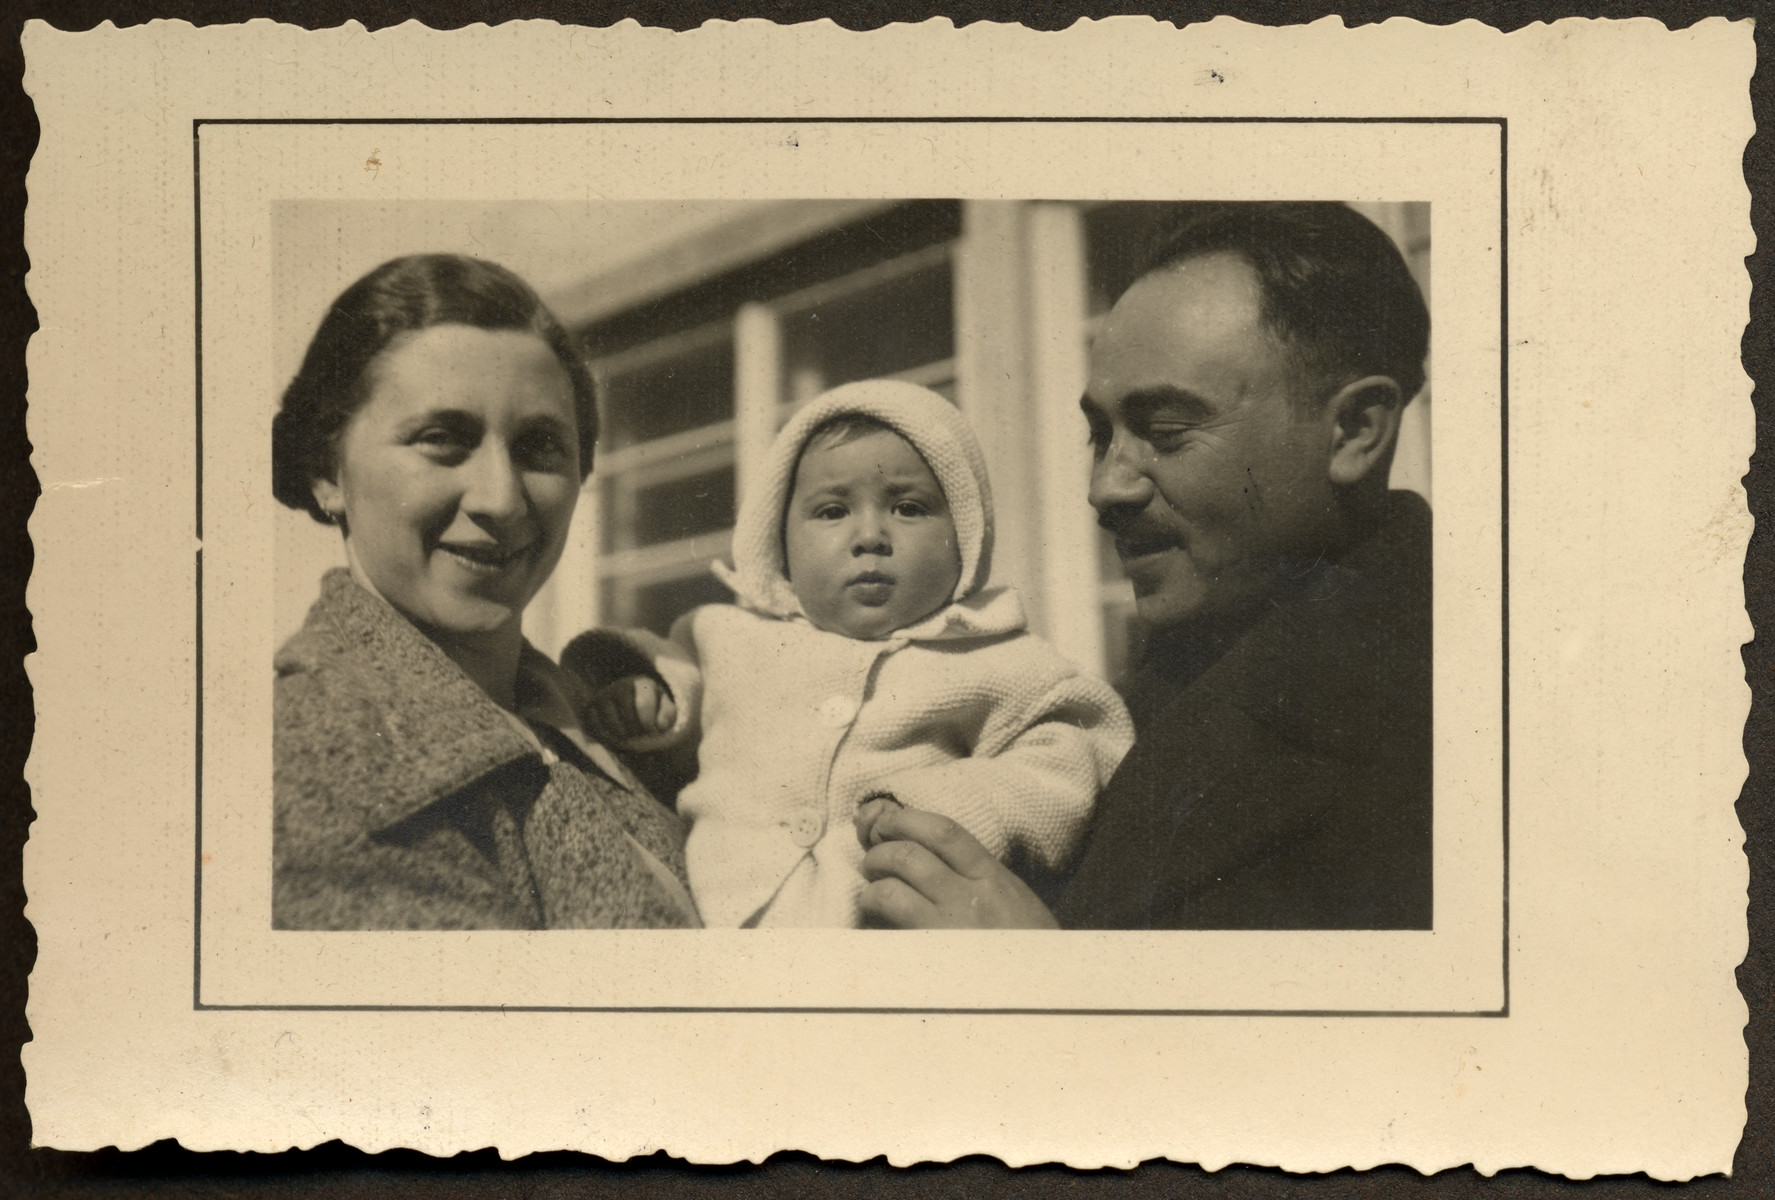 Close-up portrait of Yehuda and Ella Mandel holding their infant son, Manny.